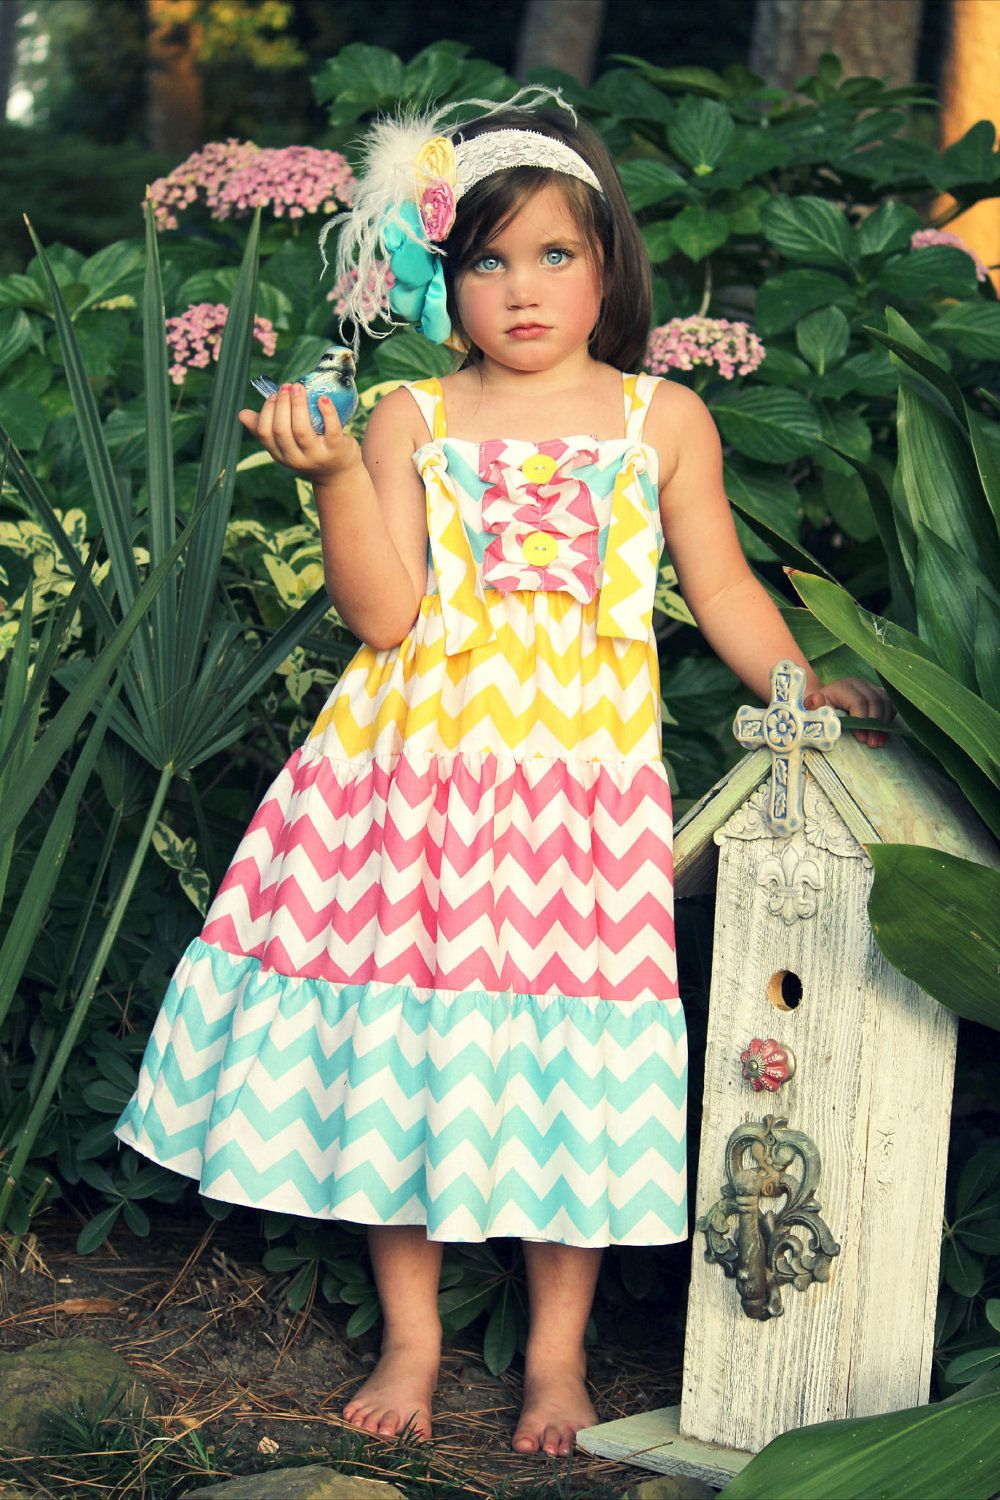 Chevron Print Tie Knot Twirl Dress In Pink Turquoise And